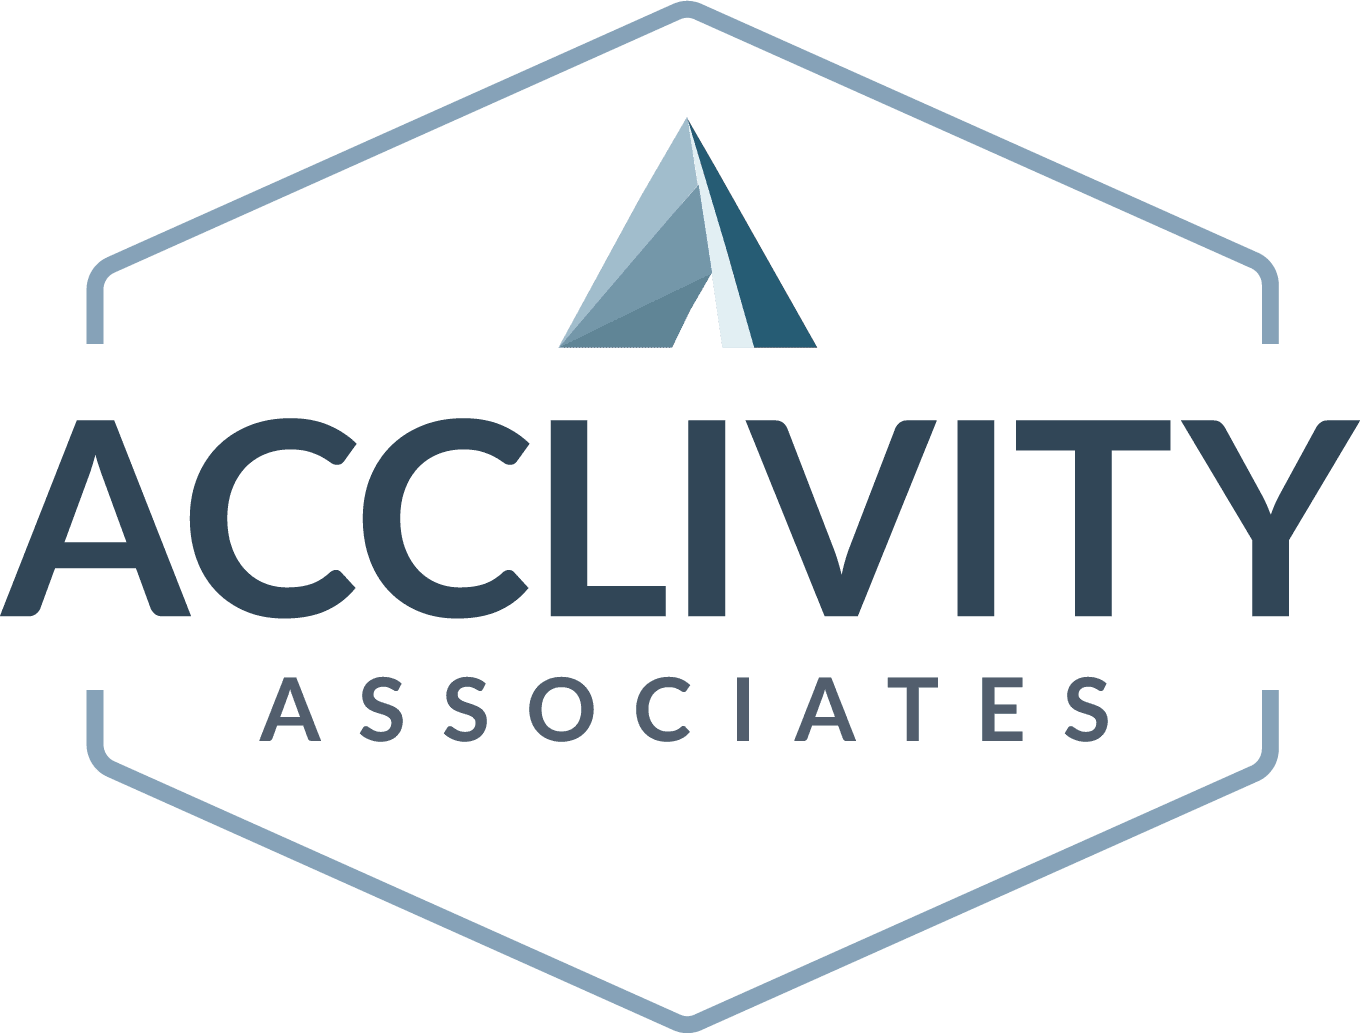 Acclivity Associates Logo